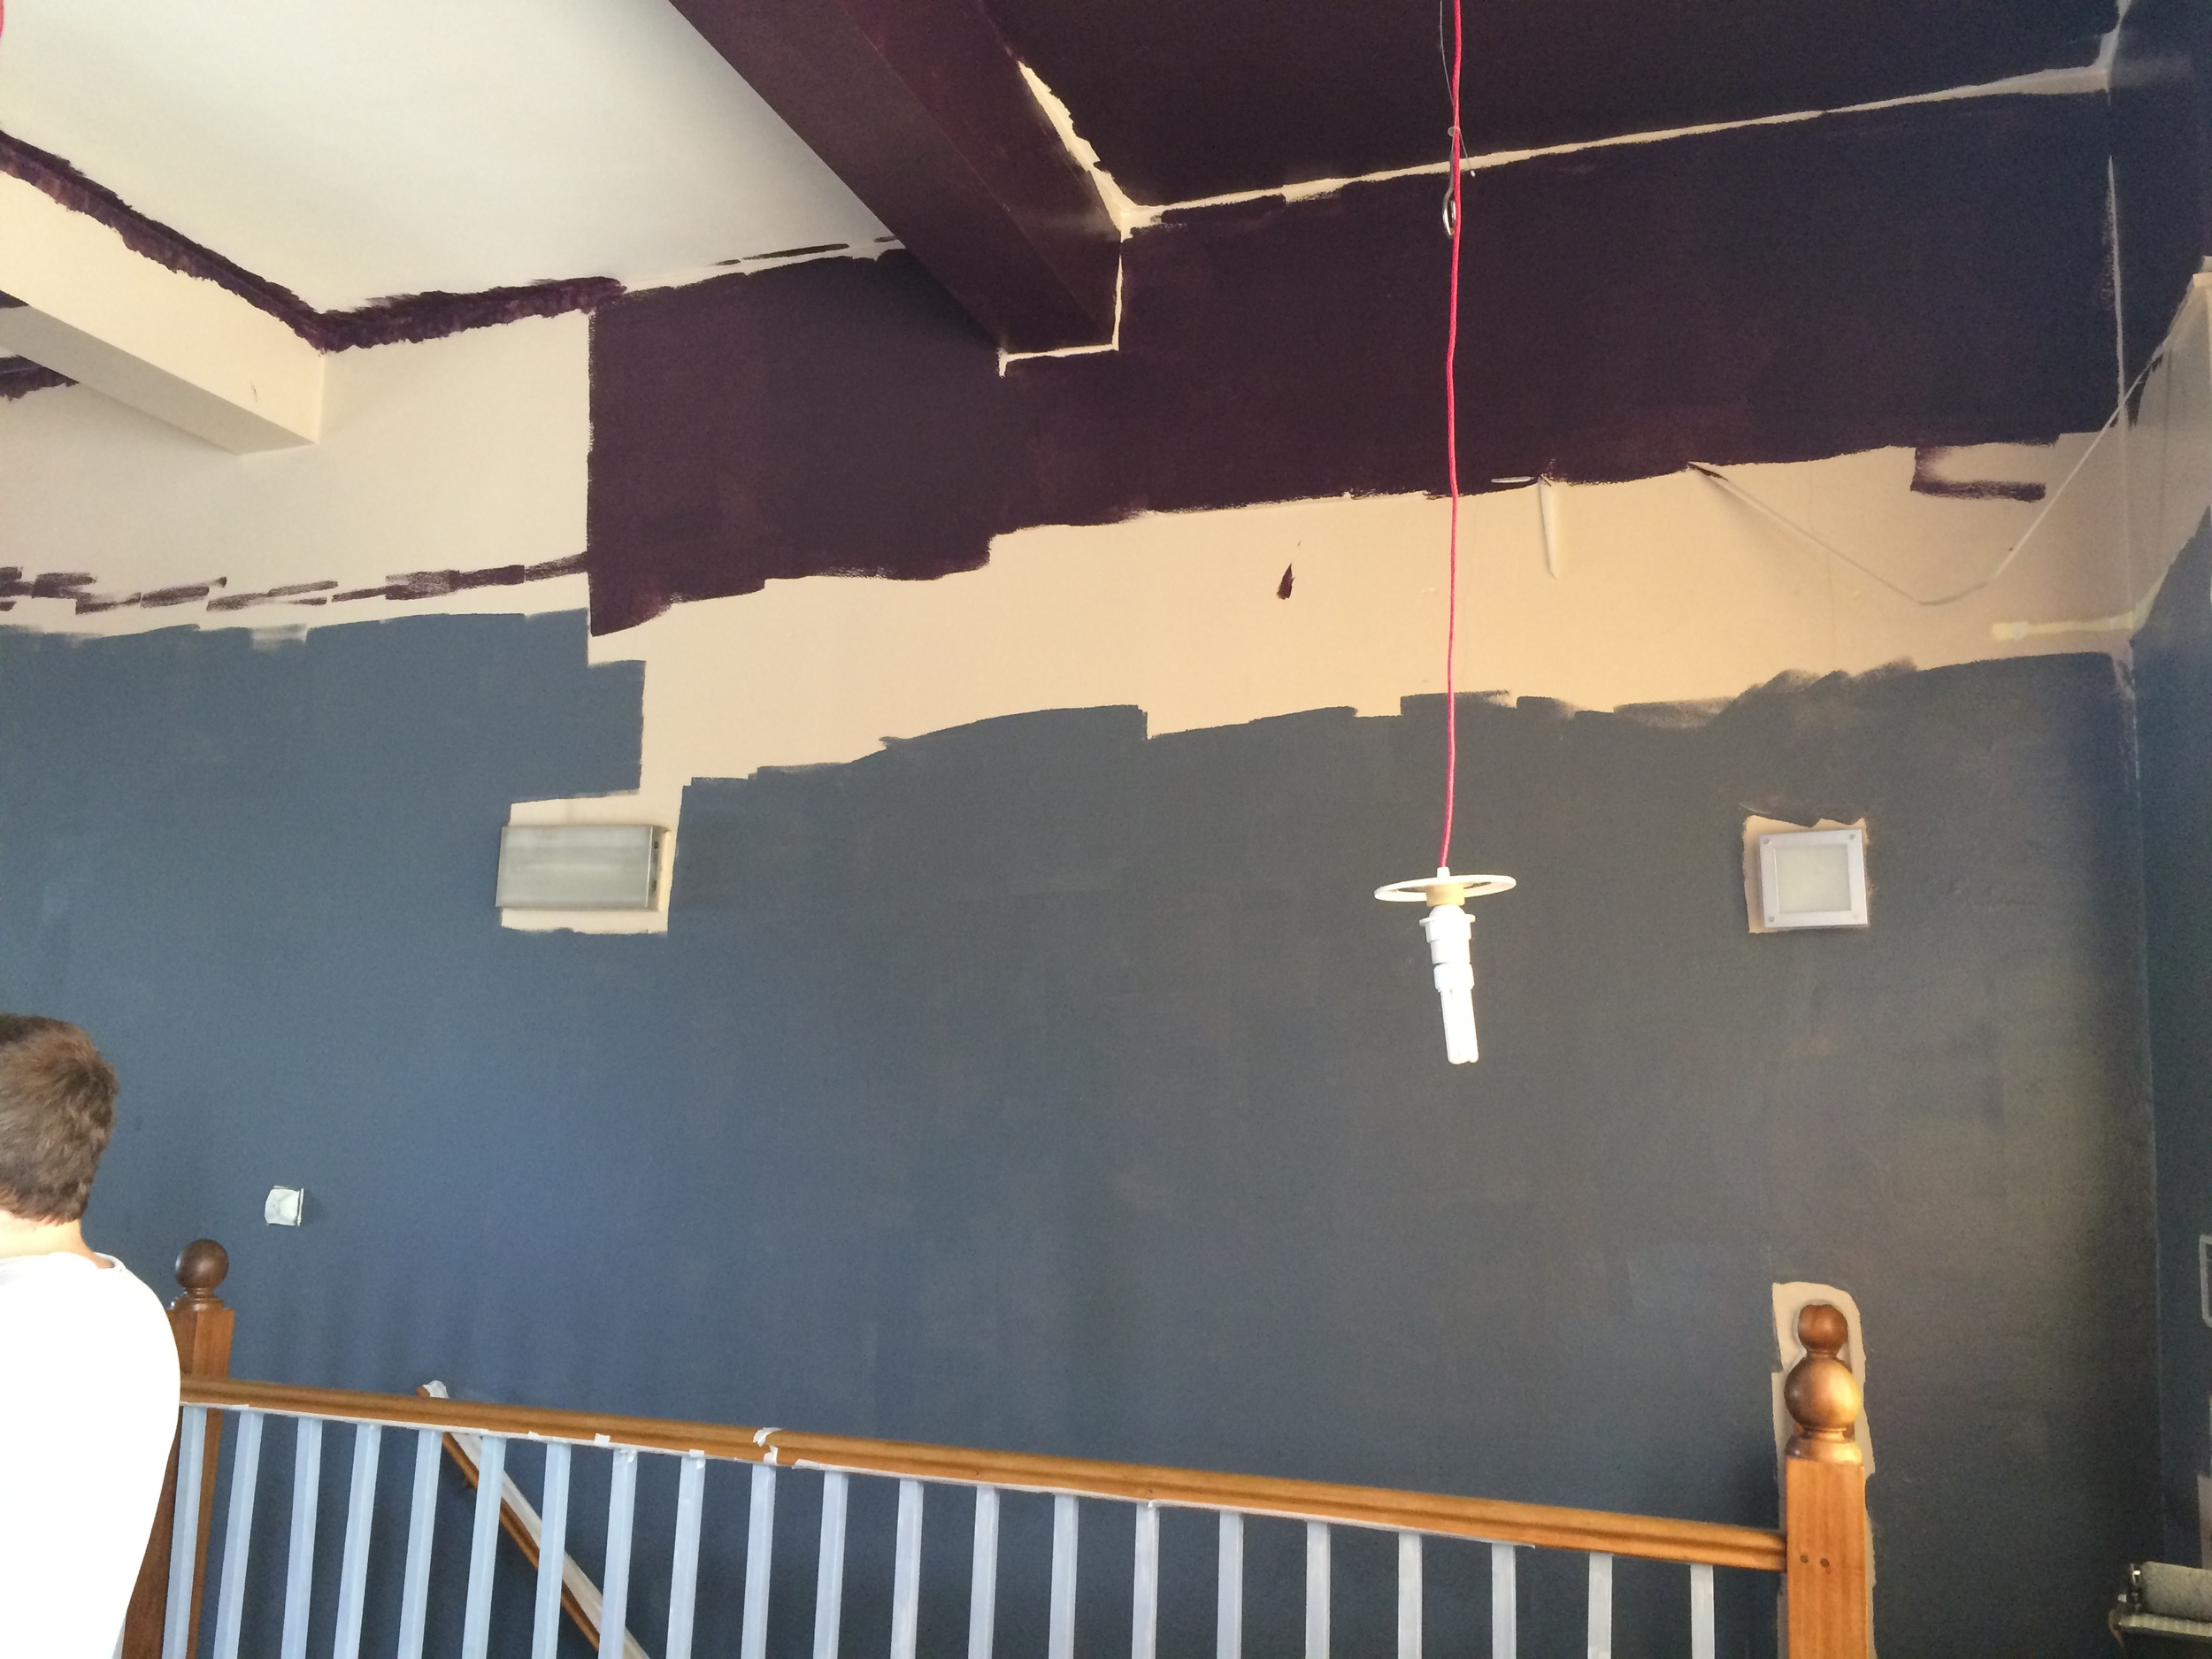 'I promise, I have a plan!' -me to our sceptical paint crew (aka friends and family!)